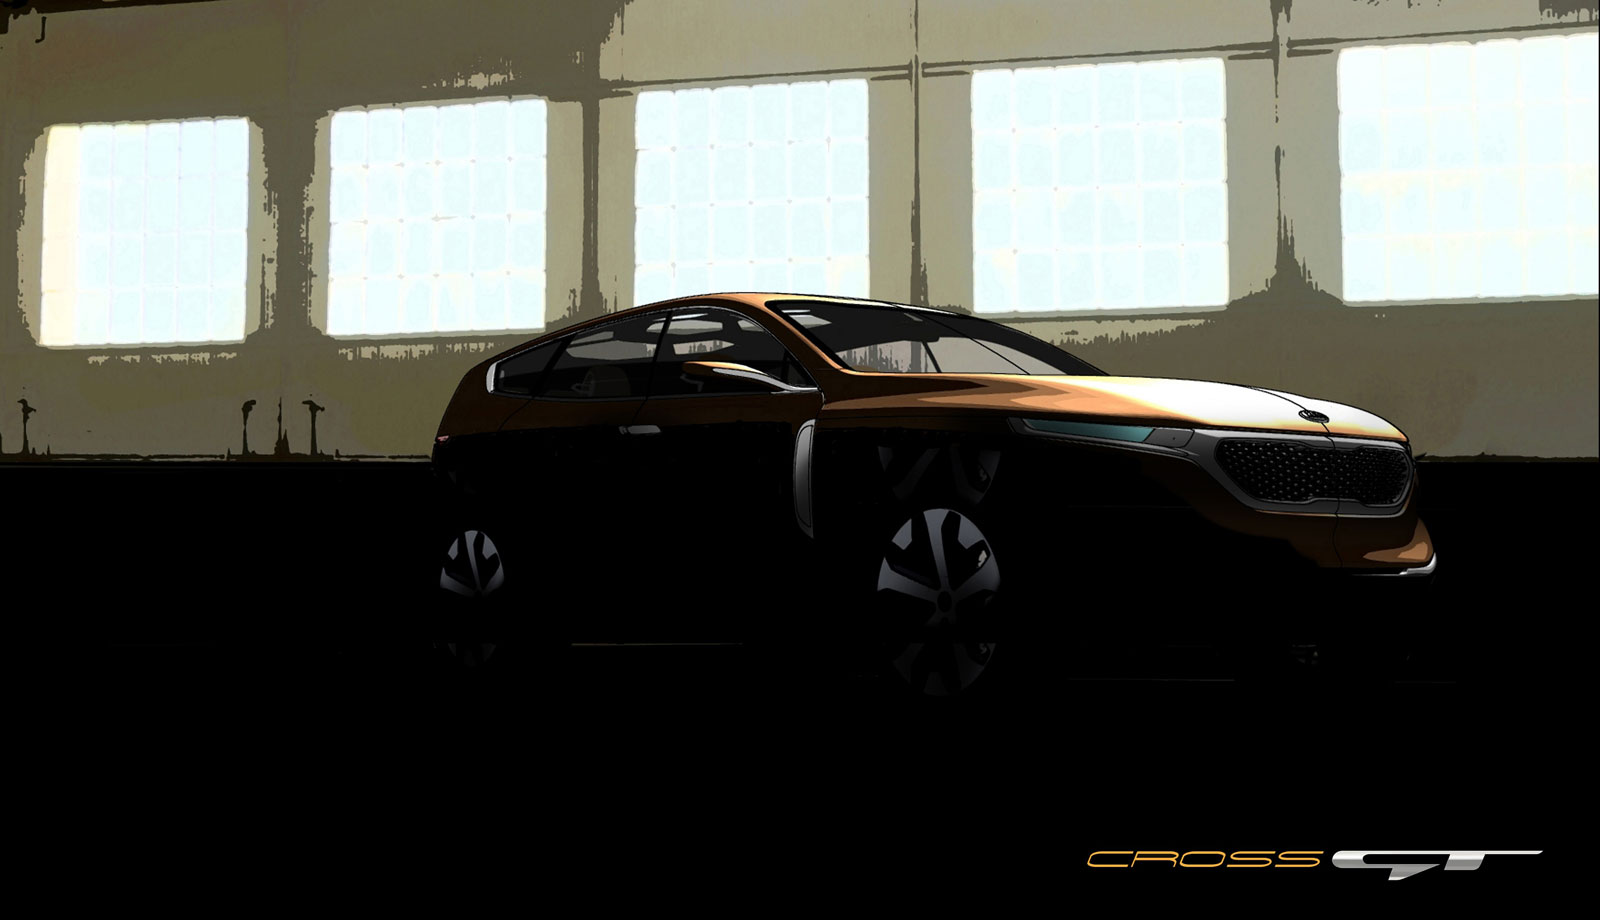 Kia Cross GT Concept preview